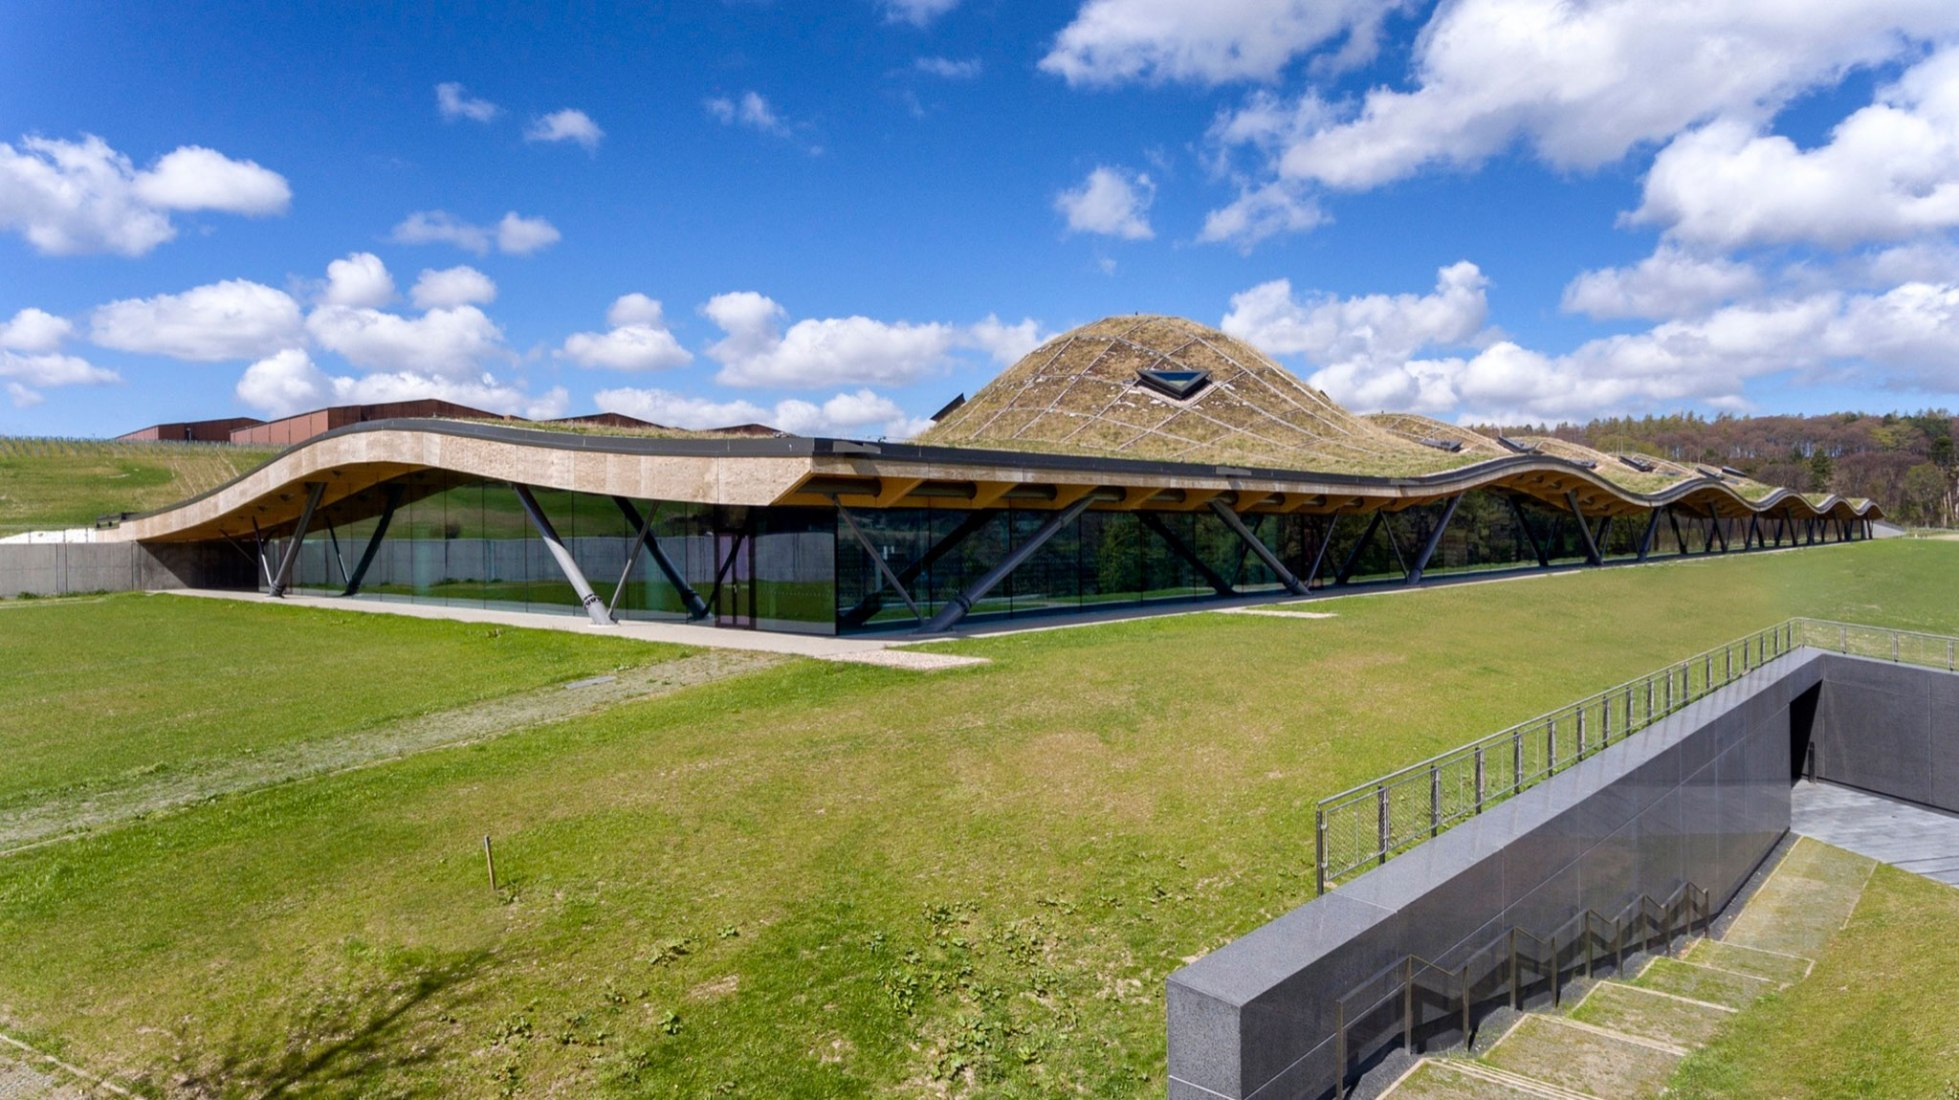 New Macallan Distillery by Rogers Stirk Harbour + Partners. Photograph by Joas Souza